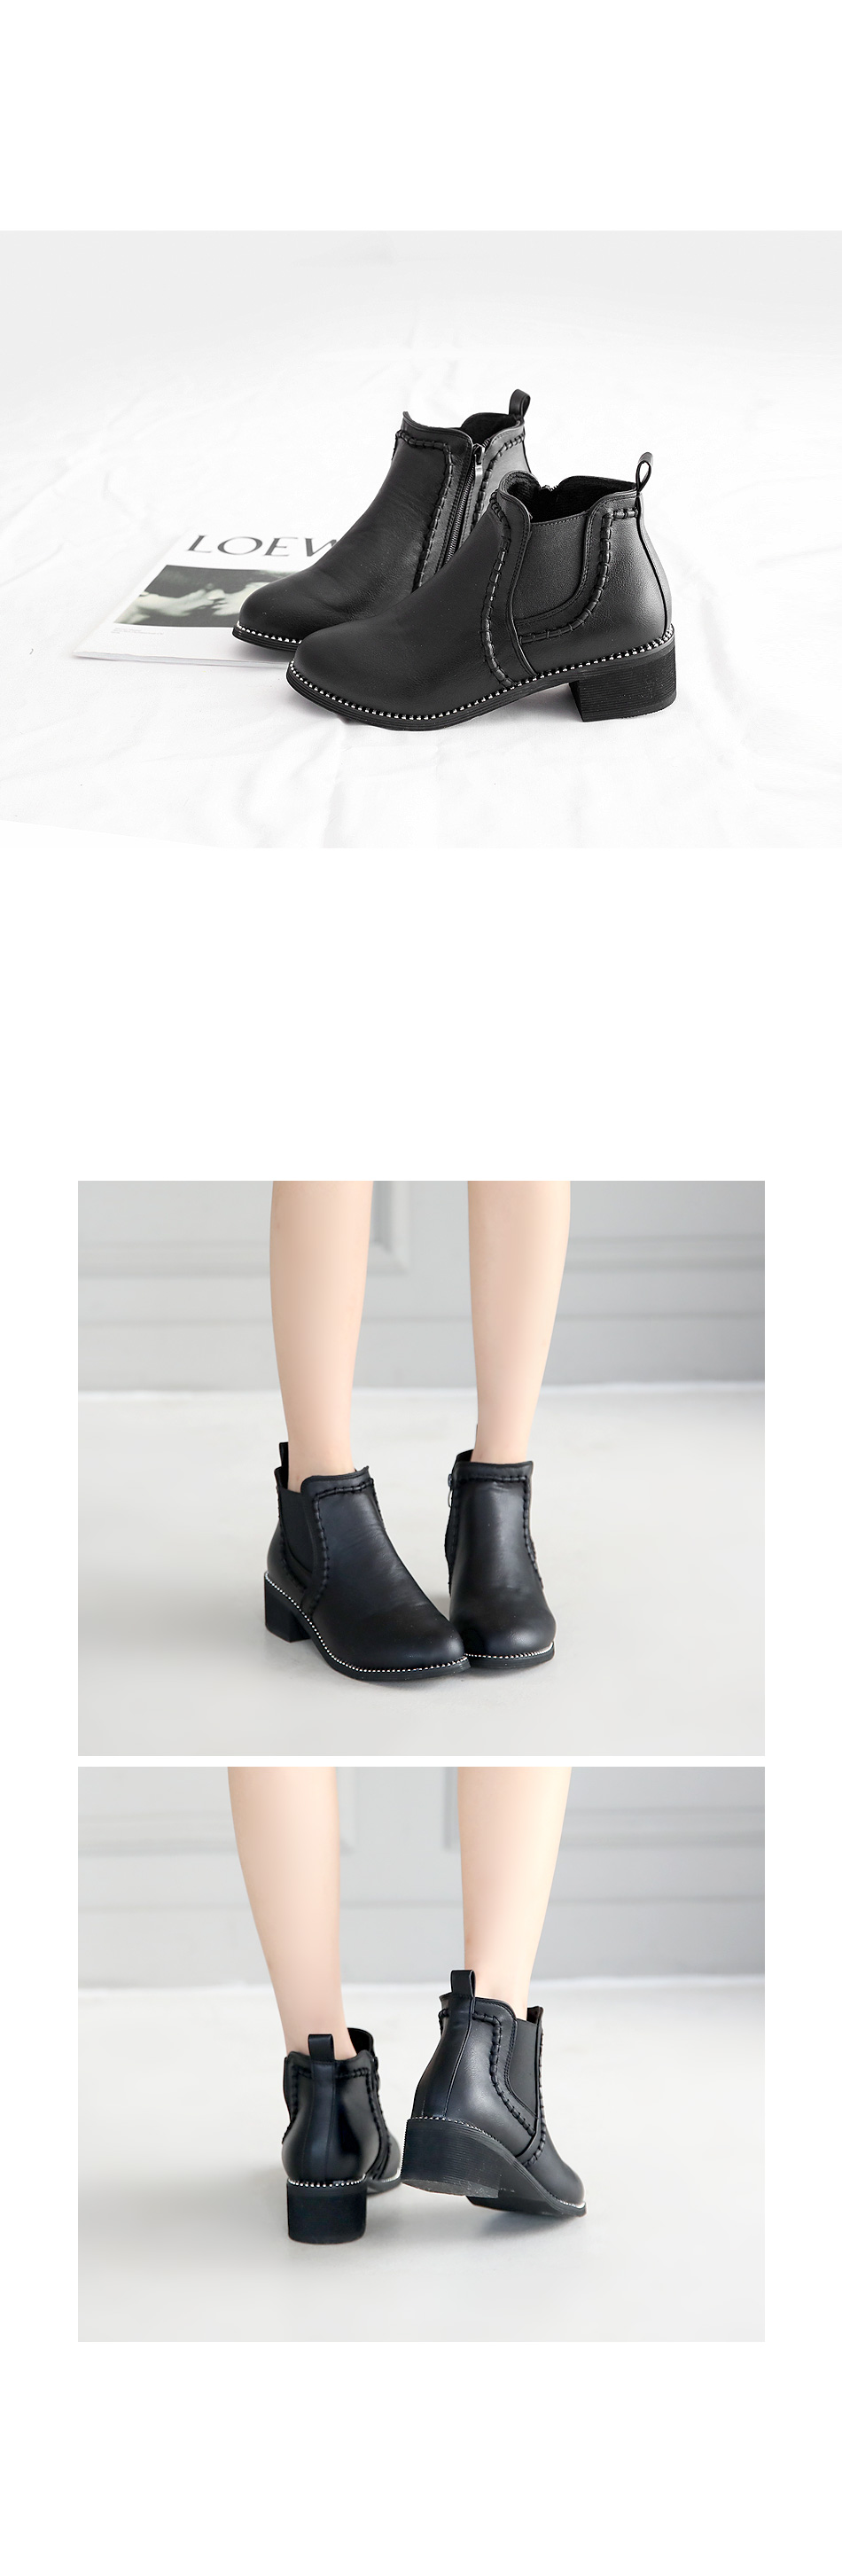 Hearts Ankle Boots 4cm